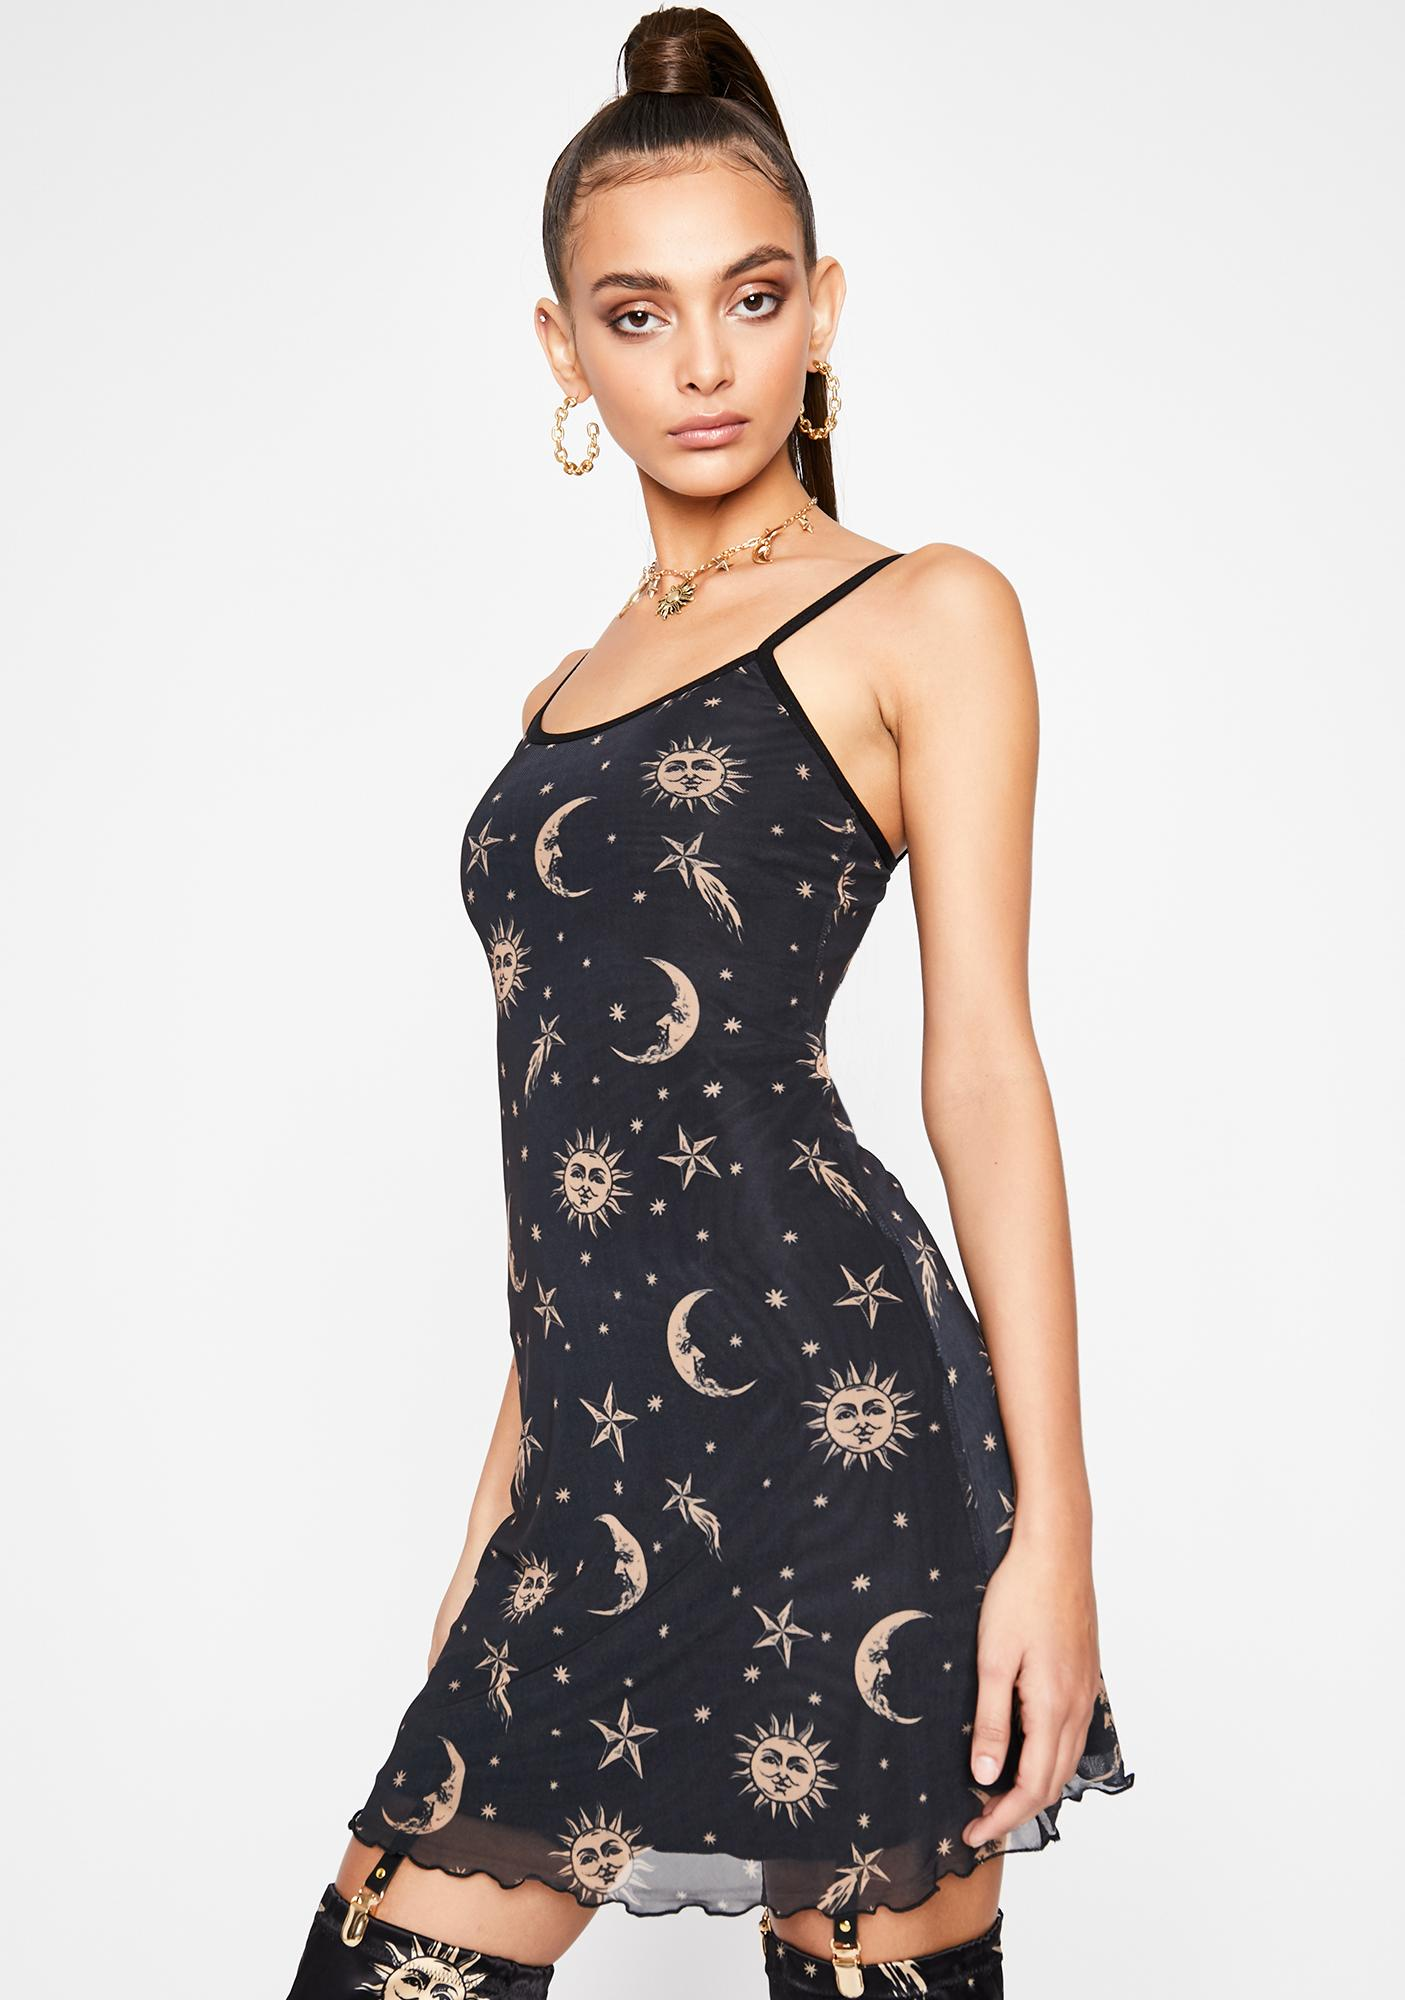 HOROSCOPEZ Walk The Moon Slip Dress